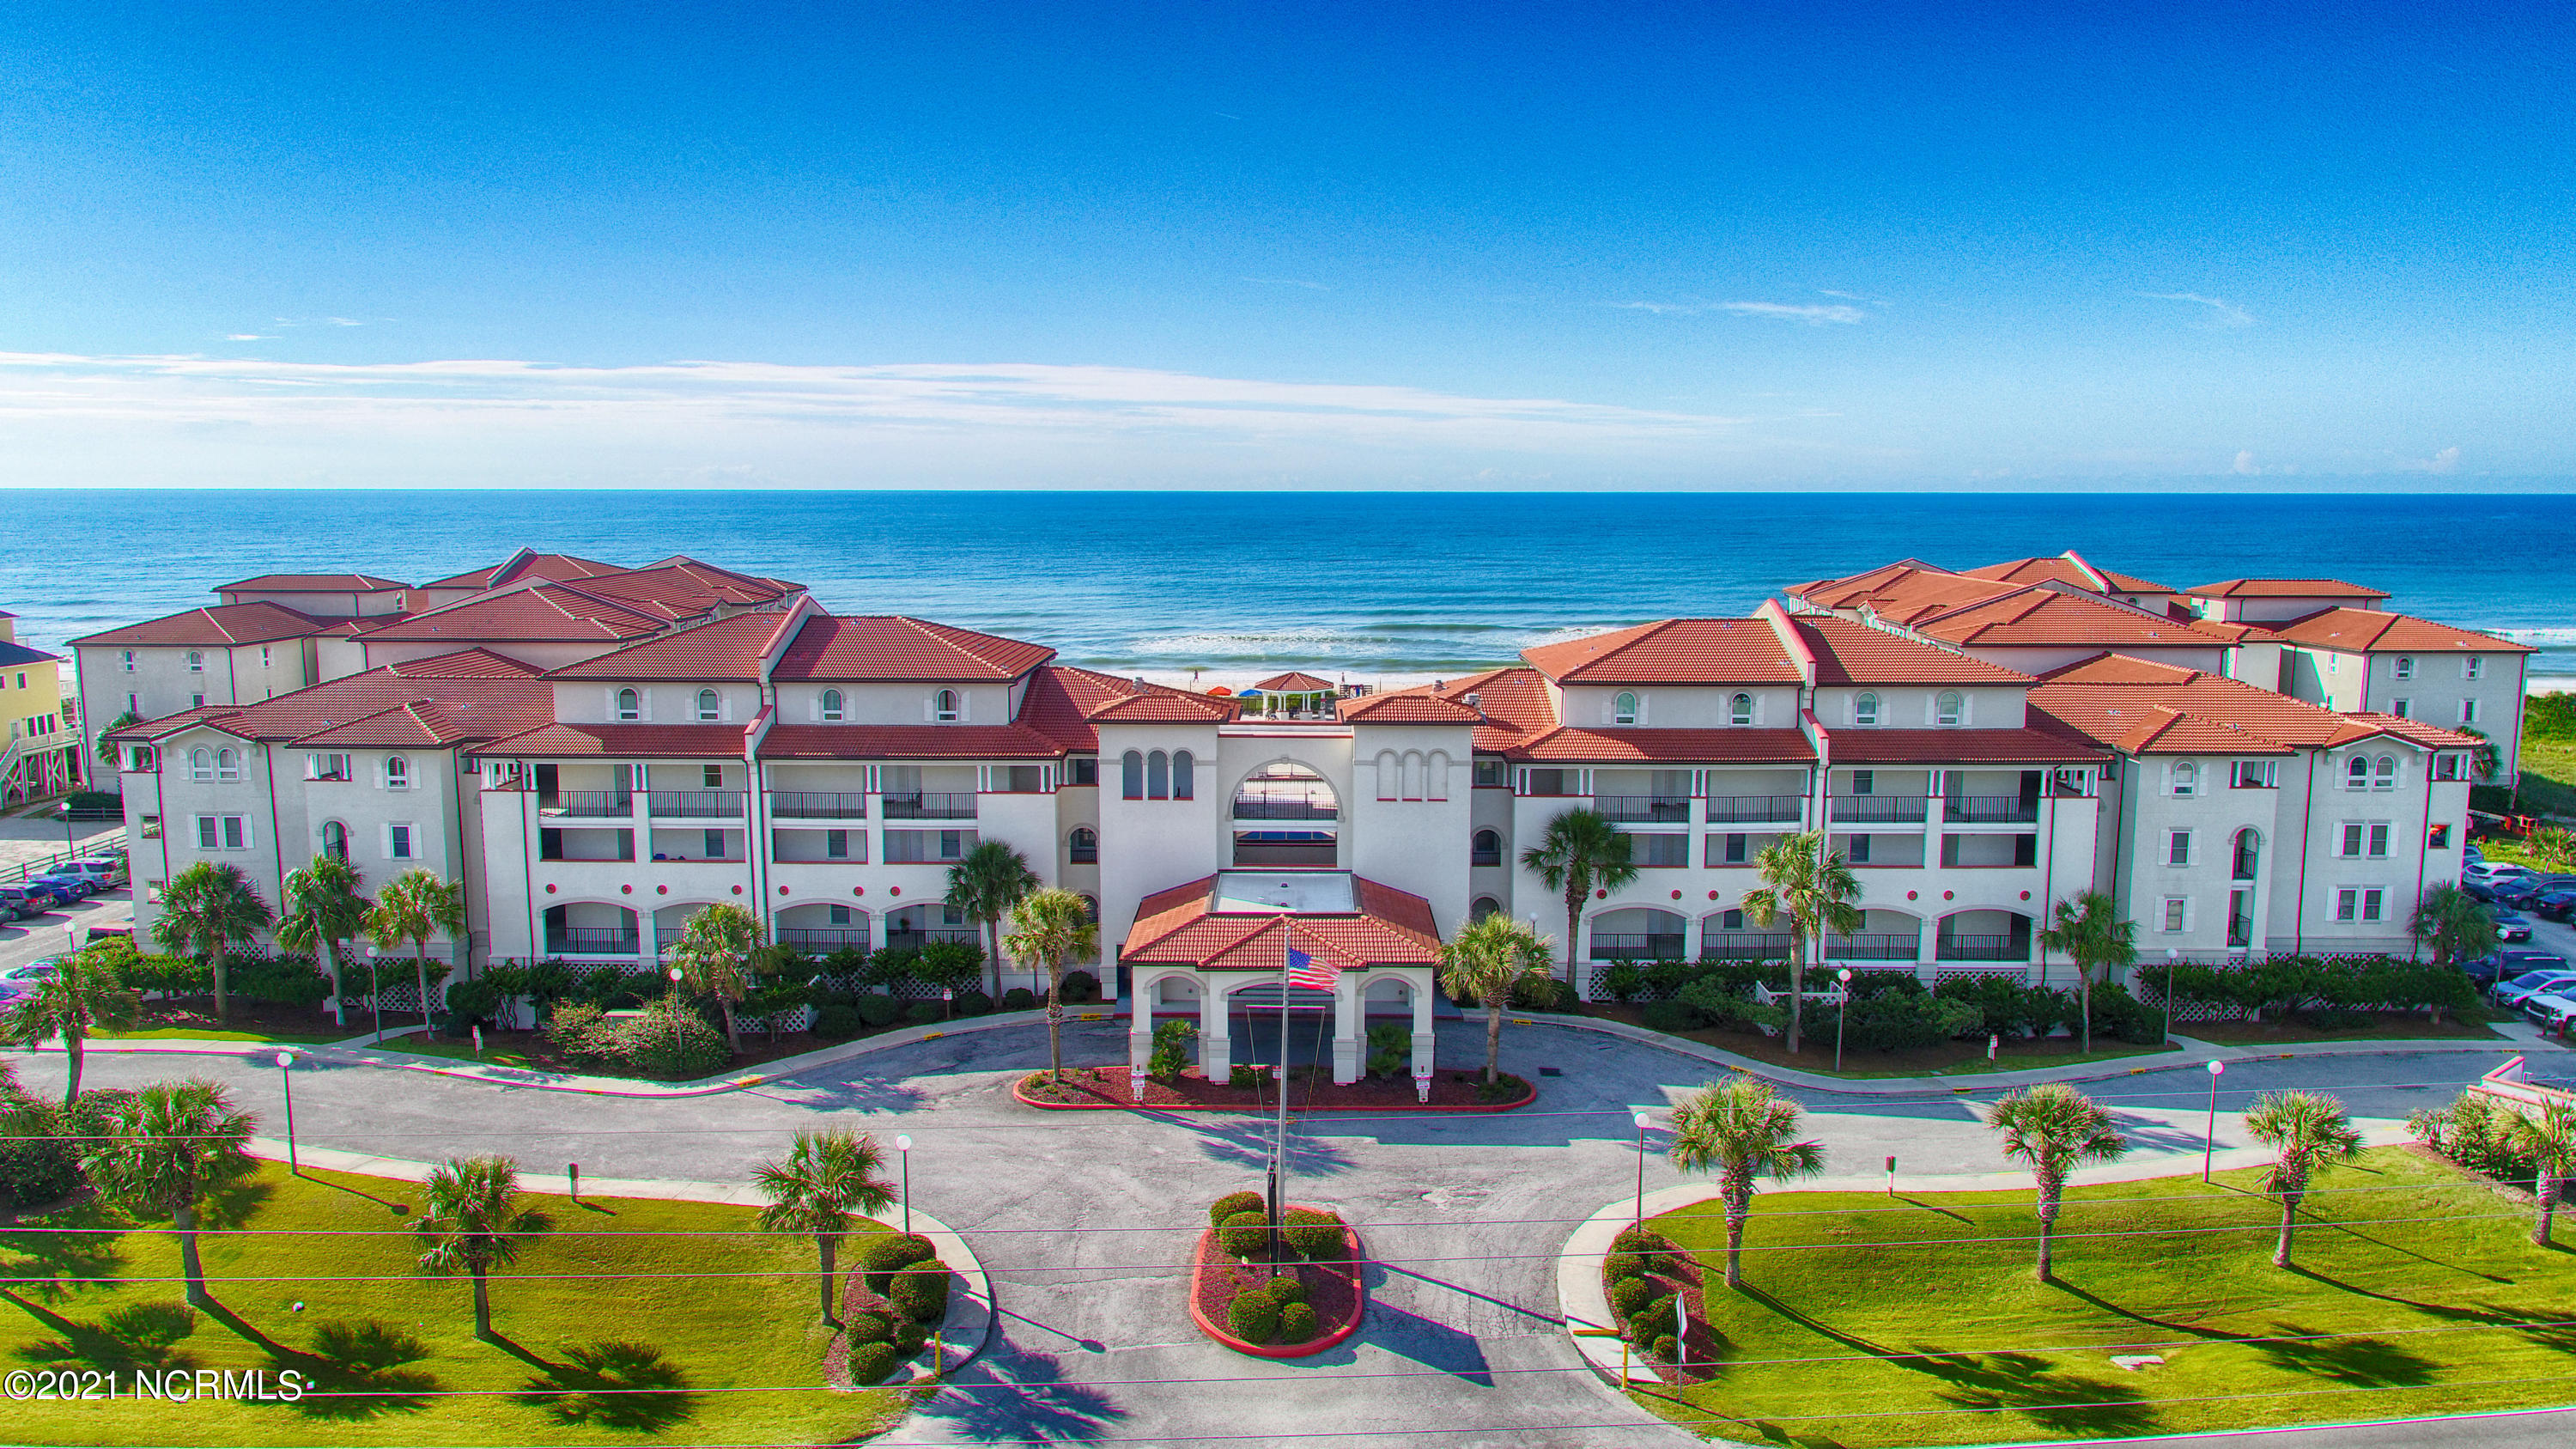 790 New River Inlet Road, North Topsail Beach, North Carolina 28460, 1 Room Rooms,1 BathroomBathrooms,Condominium,For sale,New River Inlet,100278898